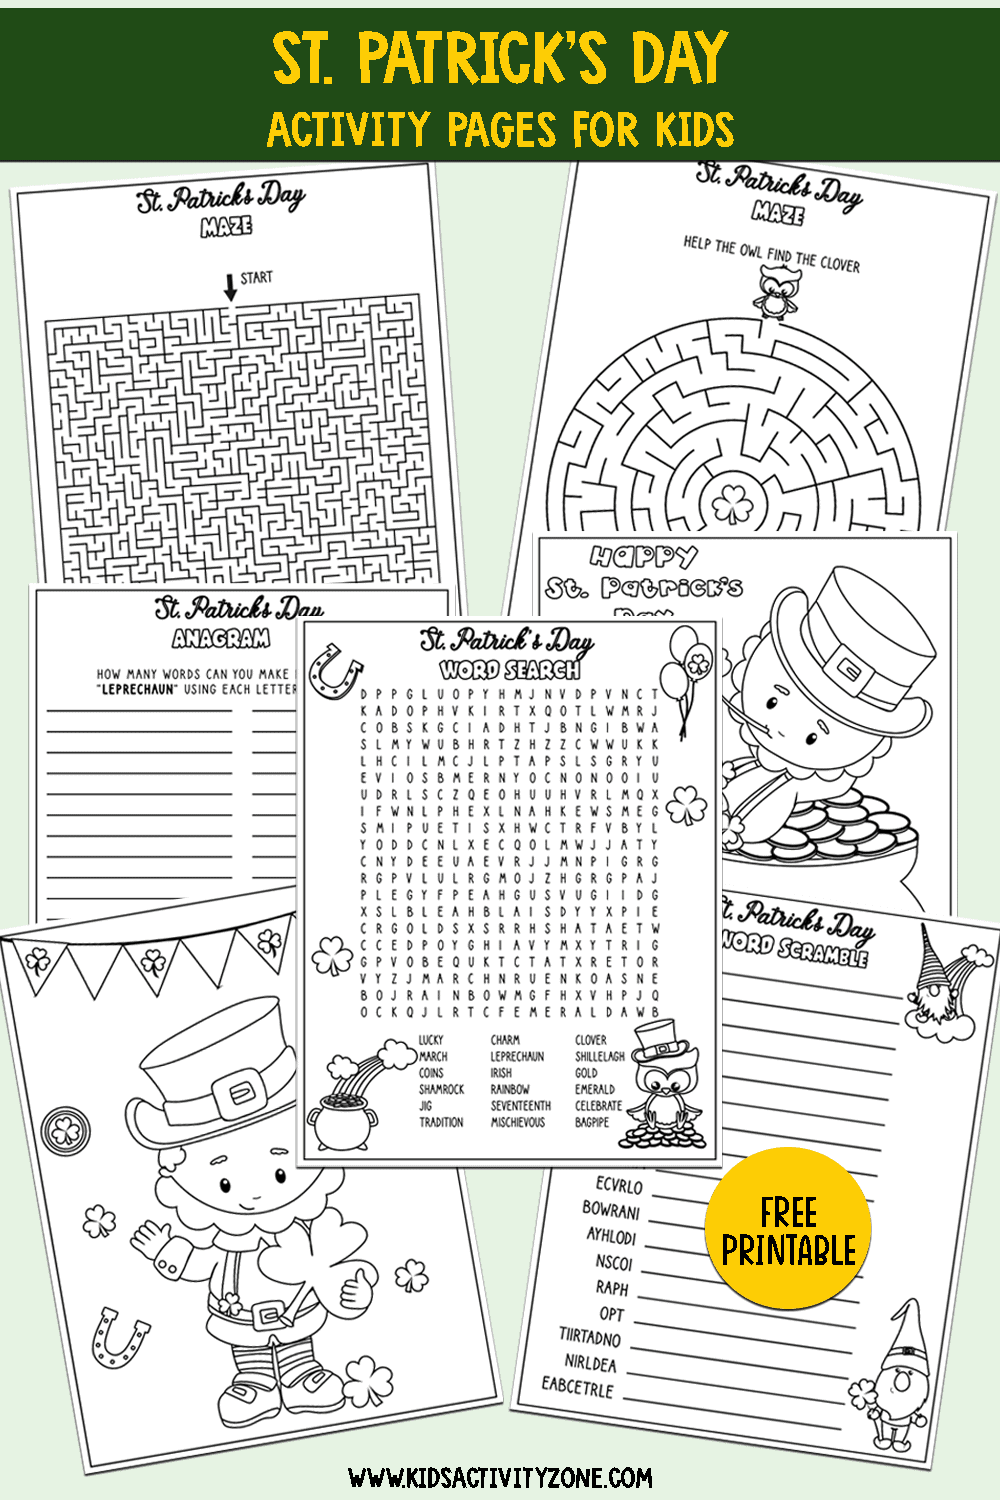 St. Patrick's Day Printable Activities Collage Image